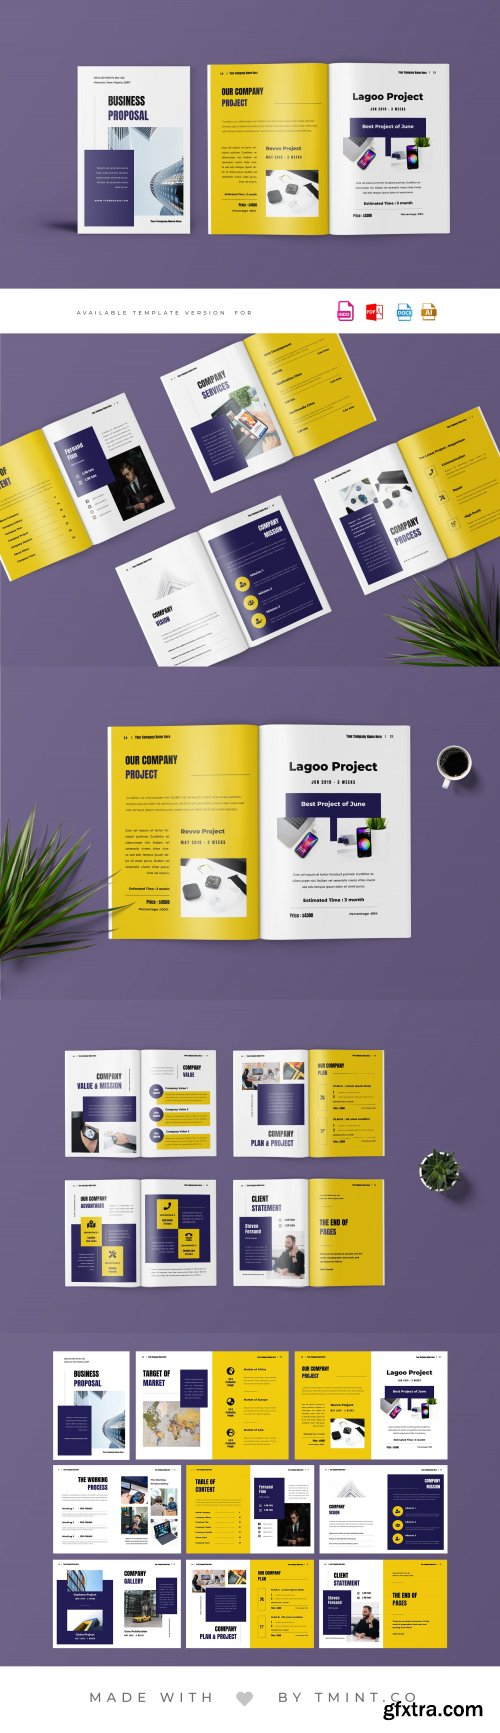 CreativeMarket - Project Proposal Template 4064441